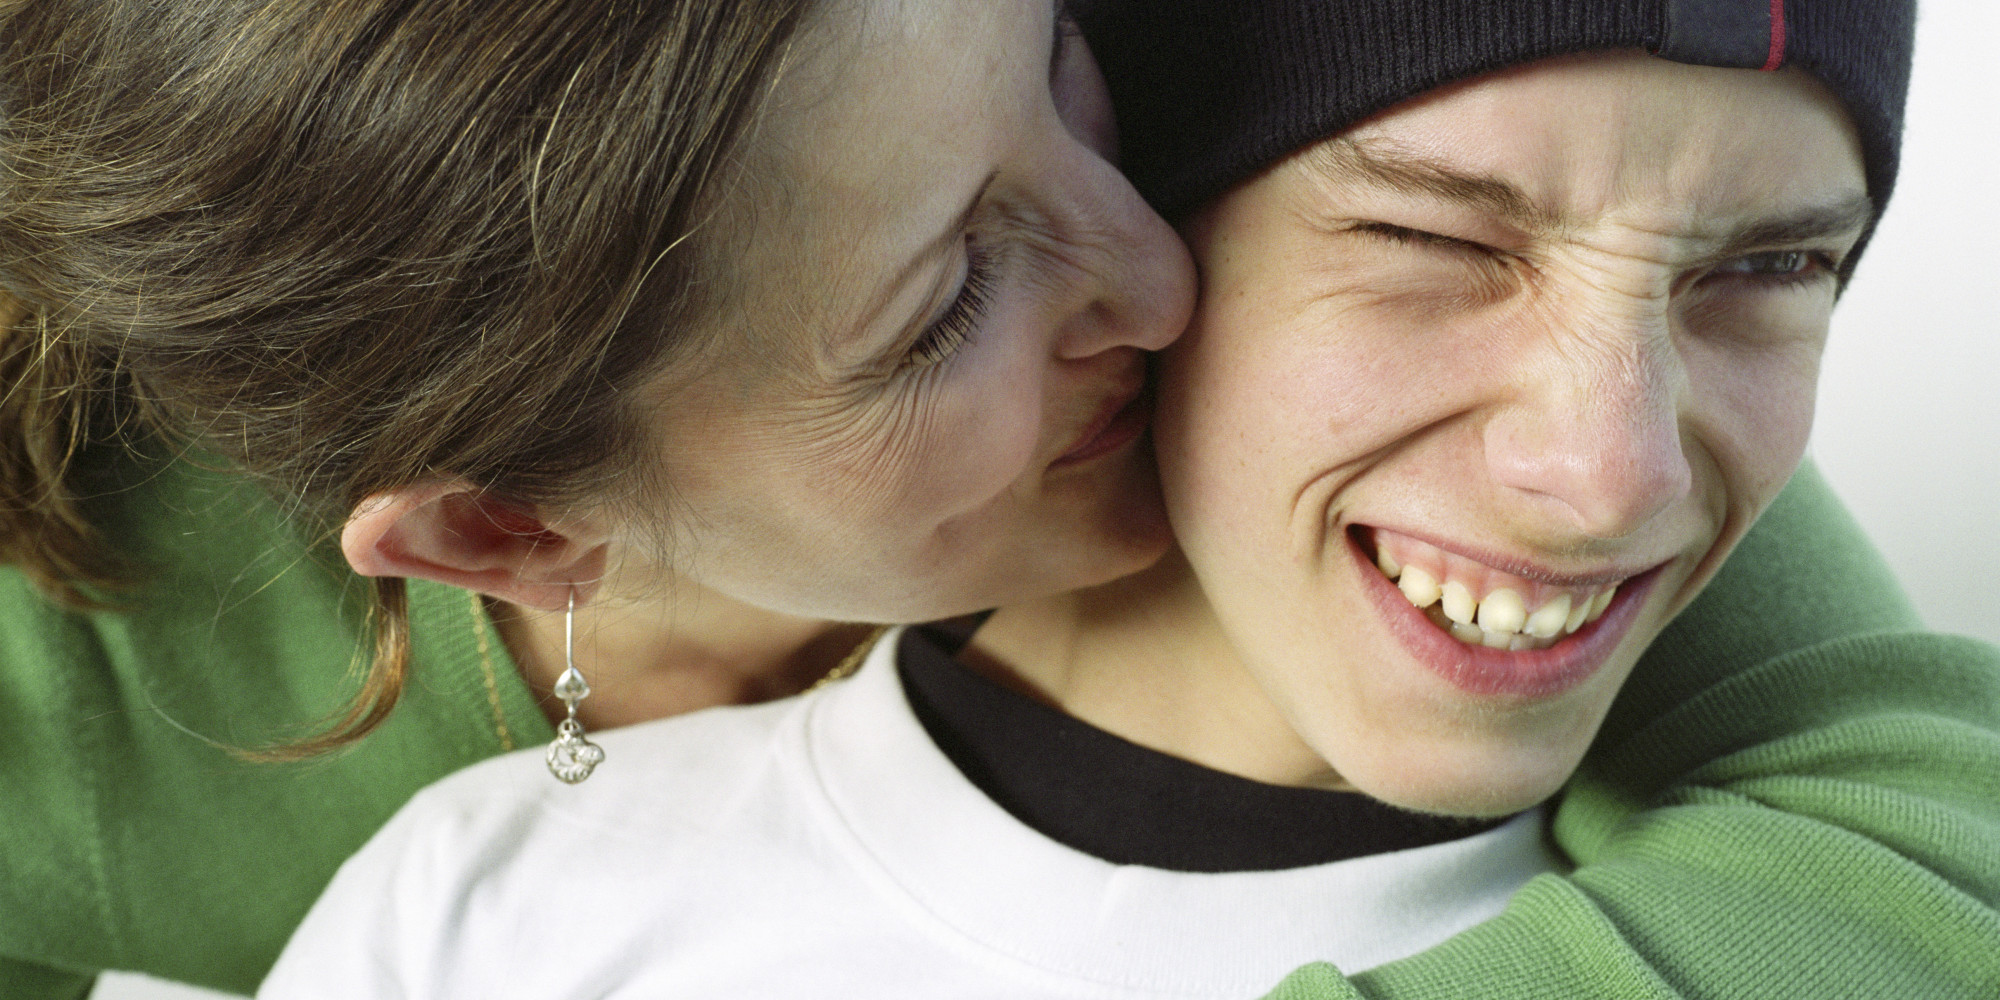 6 Things Only The Mother Of A Teenage Boy Would Understand: http://www.huffingtonpost.com/2014/02/21/raising-teenagers_n_4767162.html